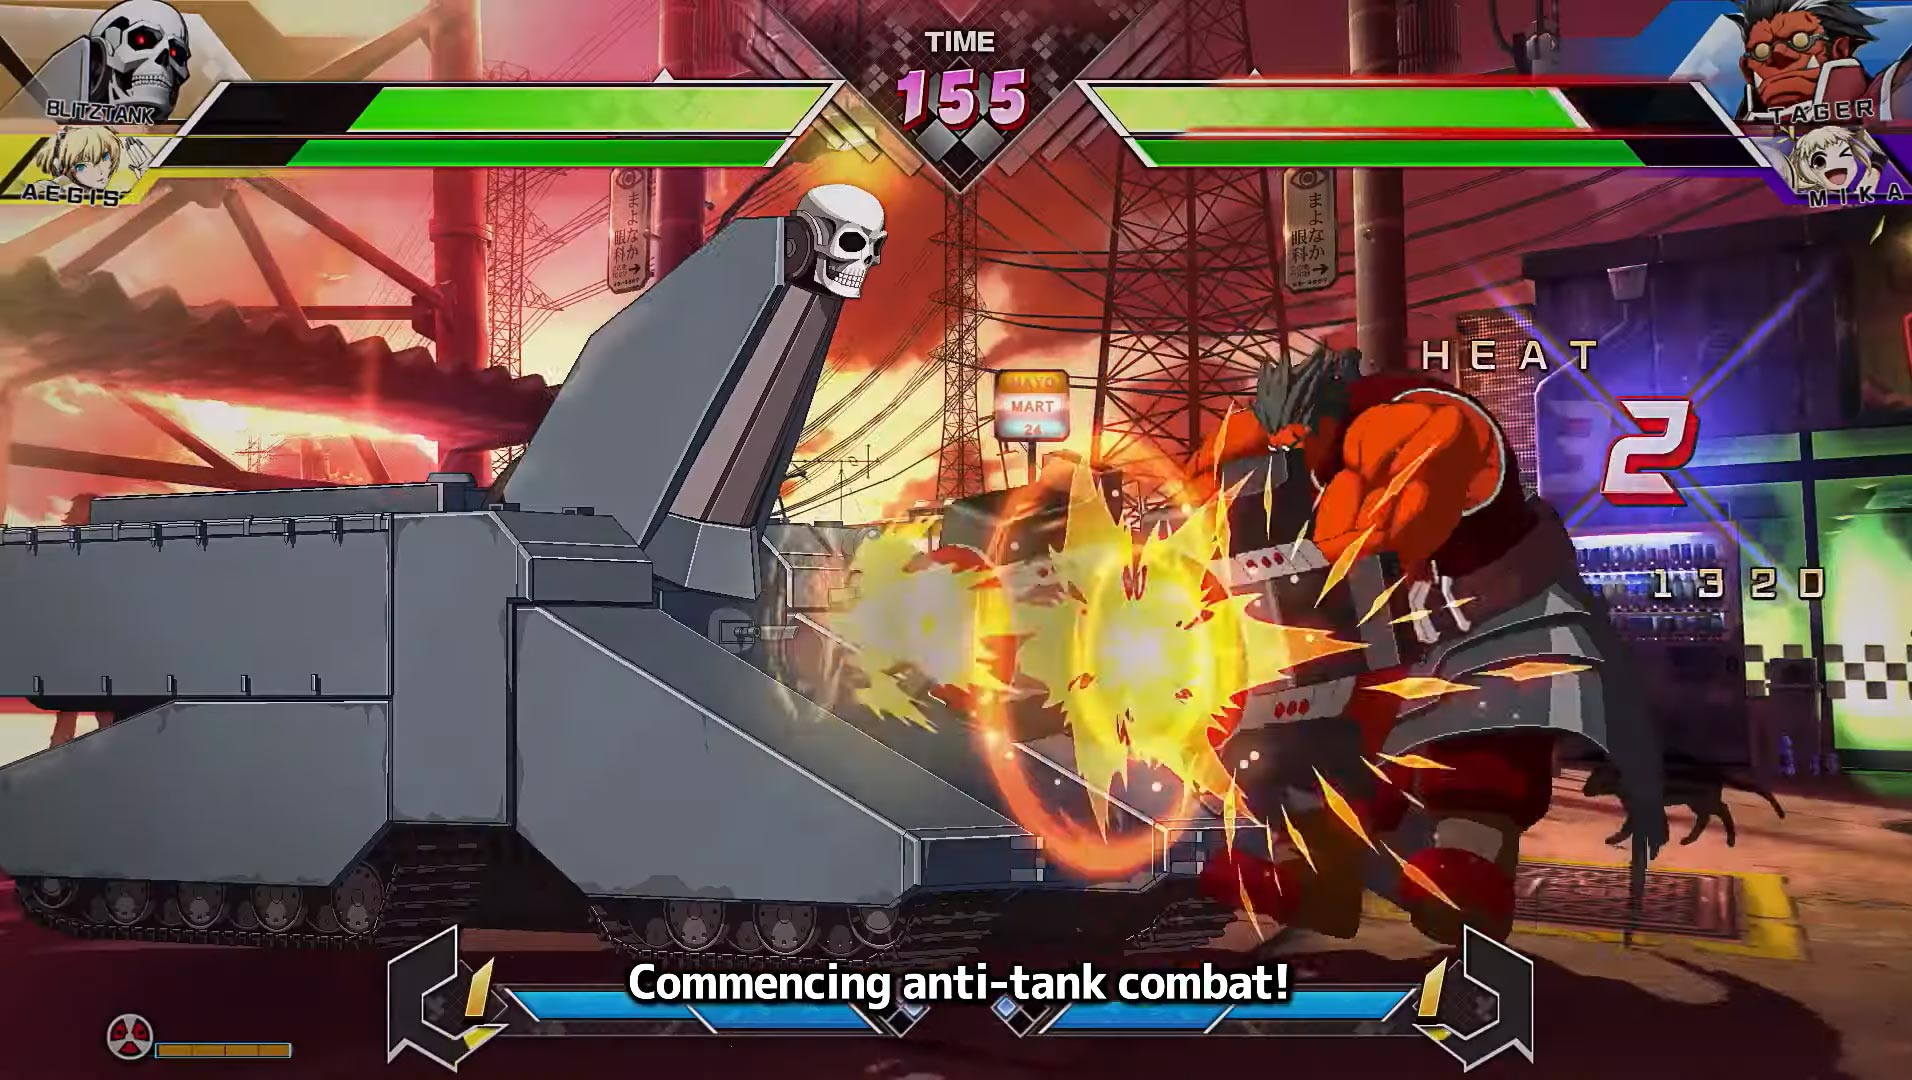 BlazBlue Cross Tag 2.0 3 out of 8 image gallery